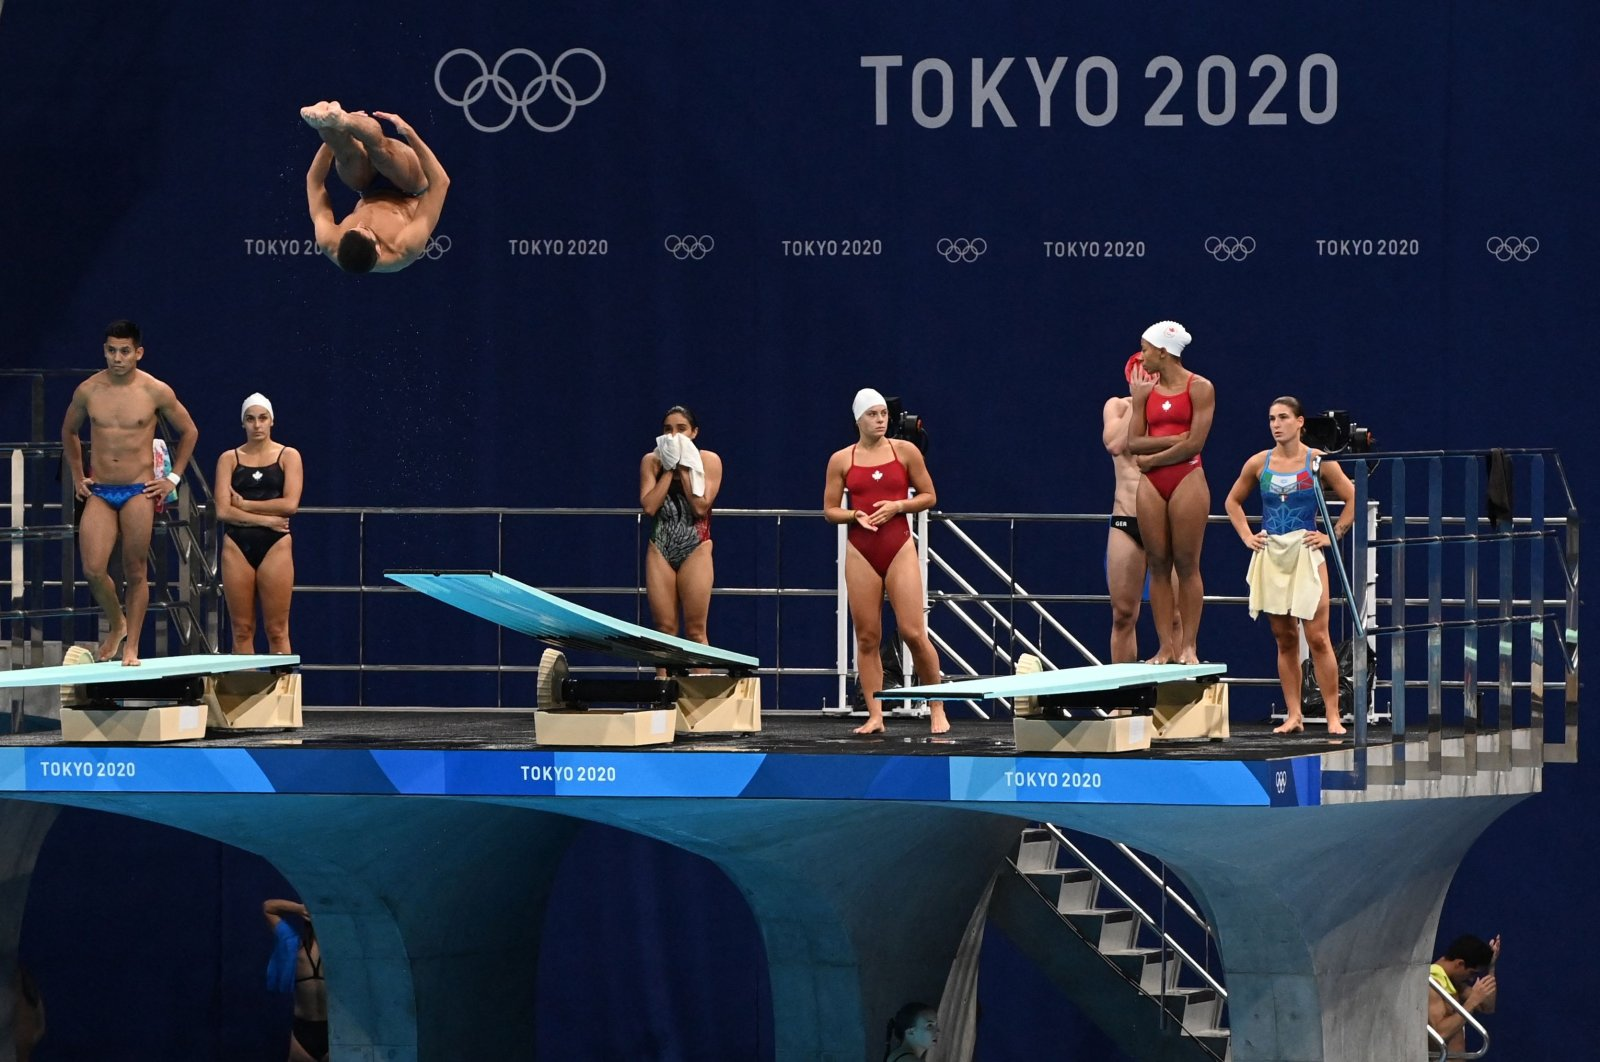 An athlete jumps during a diving practice session at the Tokyo Aquatics Centre, ahead of the Tokyo 2020 Olympic Games in Tokyo, Japan, on July 21, 2021. (AFP Photo)